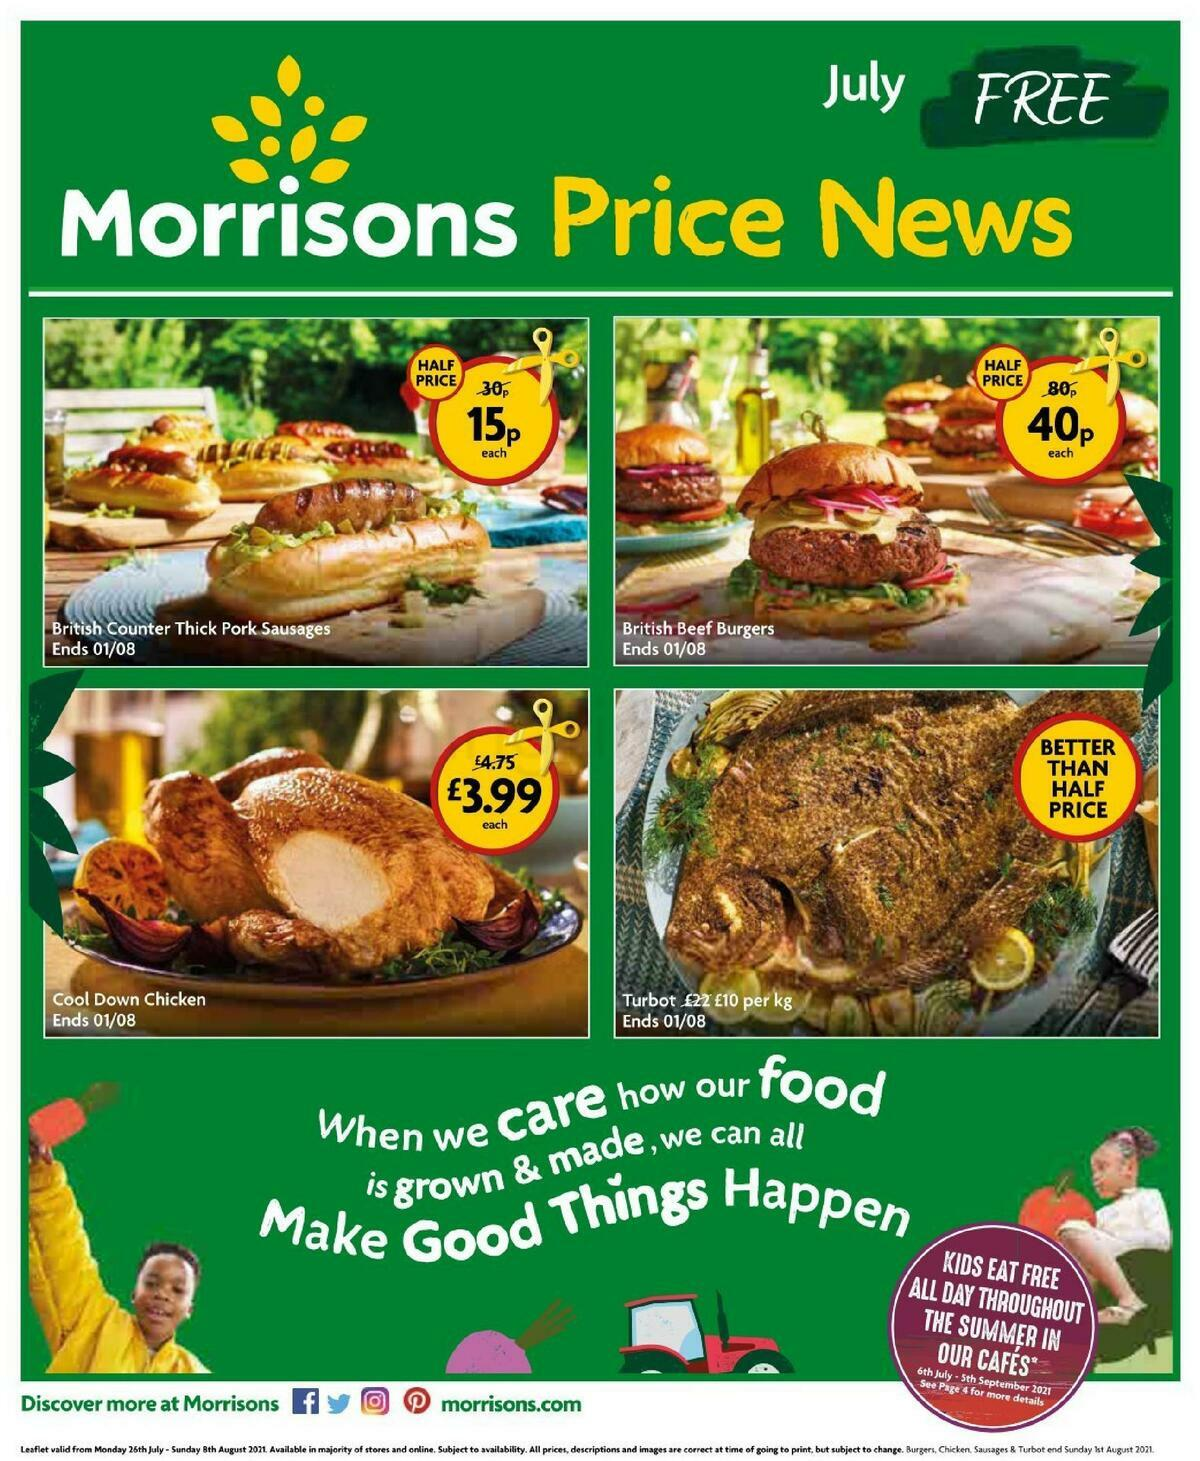 Morrisons Price News Offers from July 26